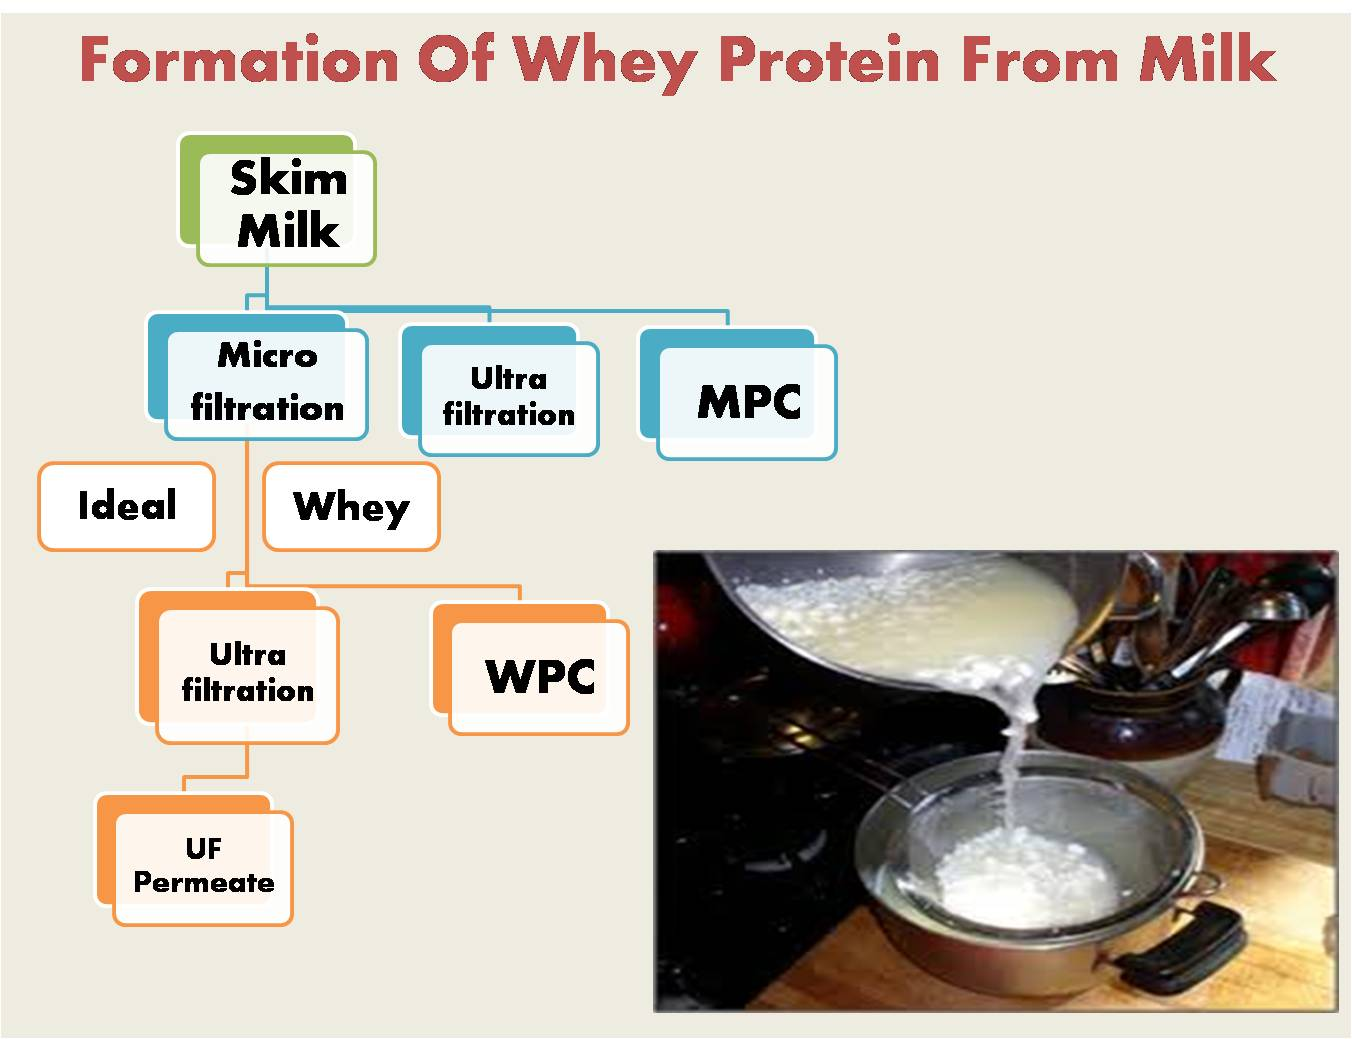 Formation Of Whey Protein From Milk